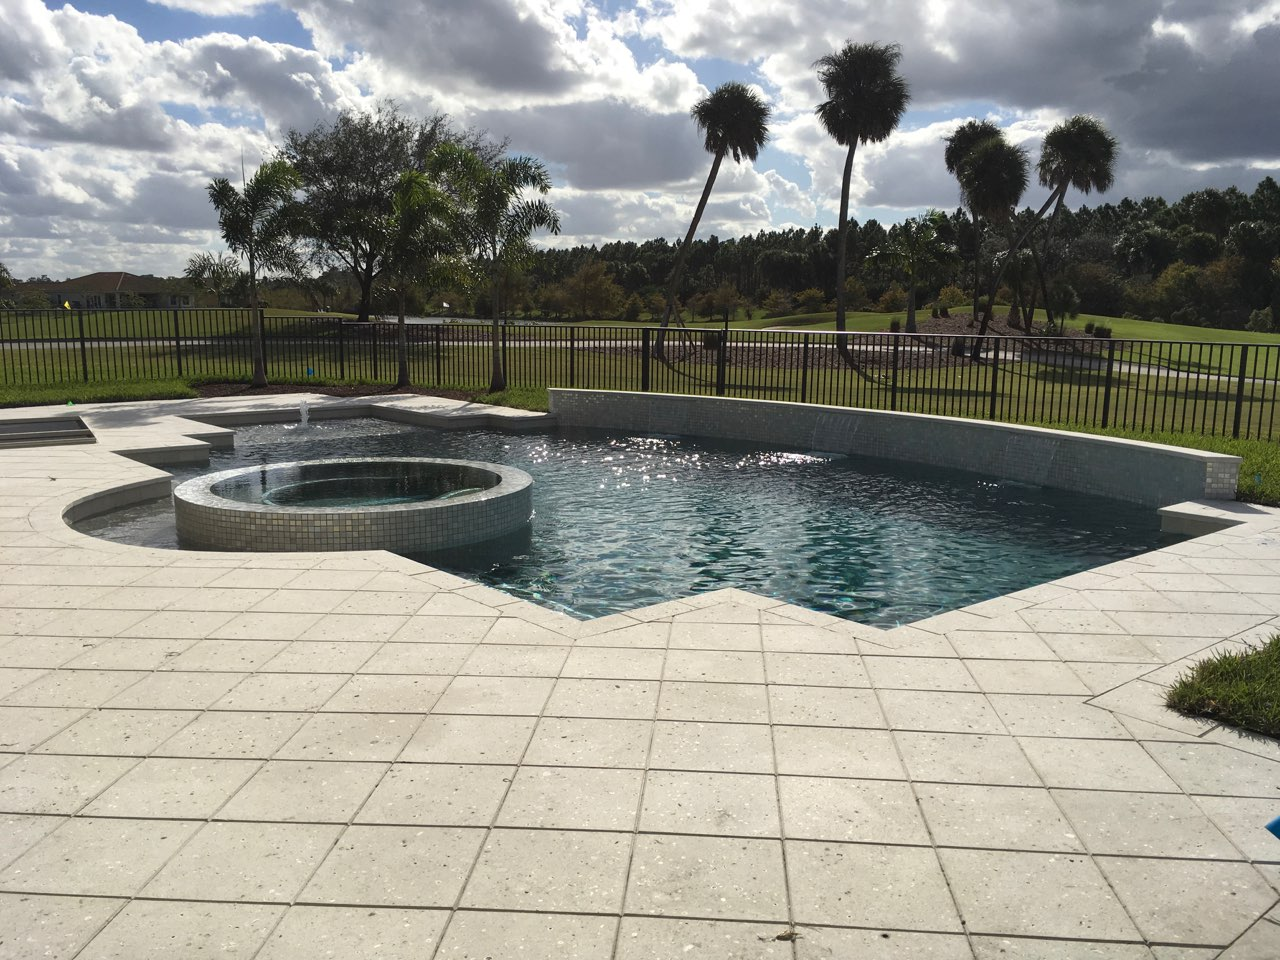 rhr pools of jupiter fl gorgeous custom pool for this golf course community home